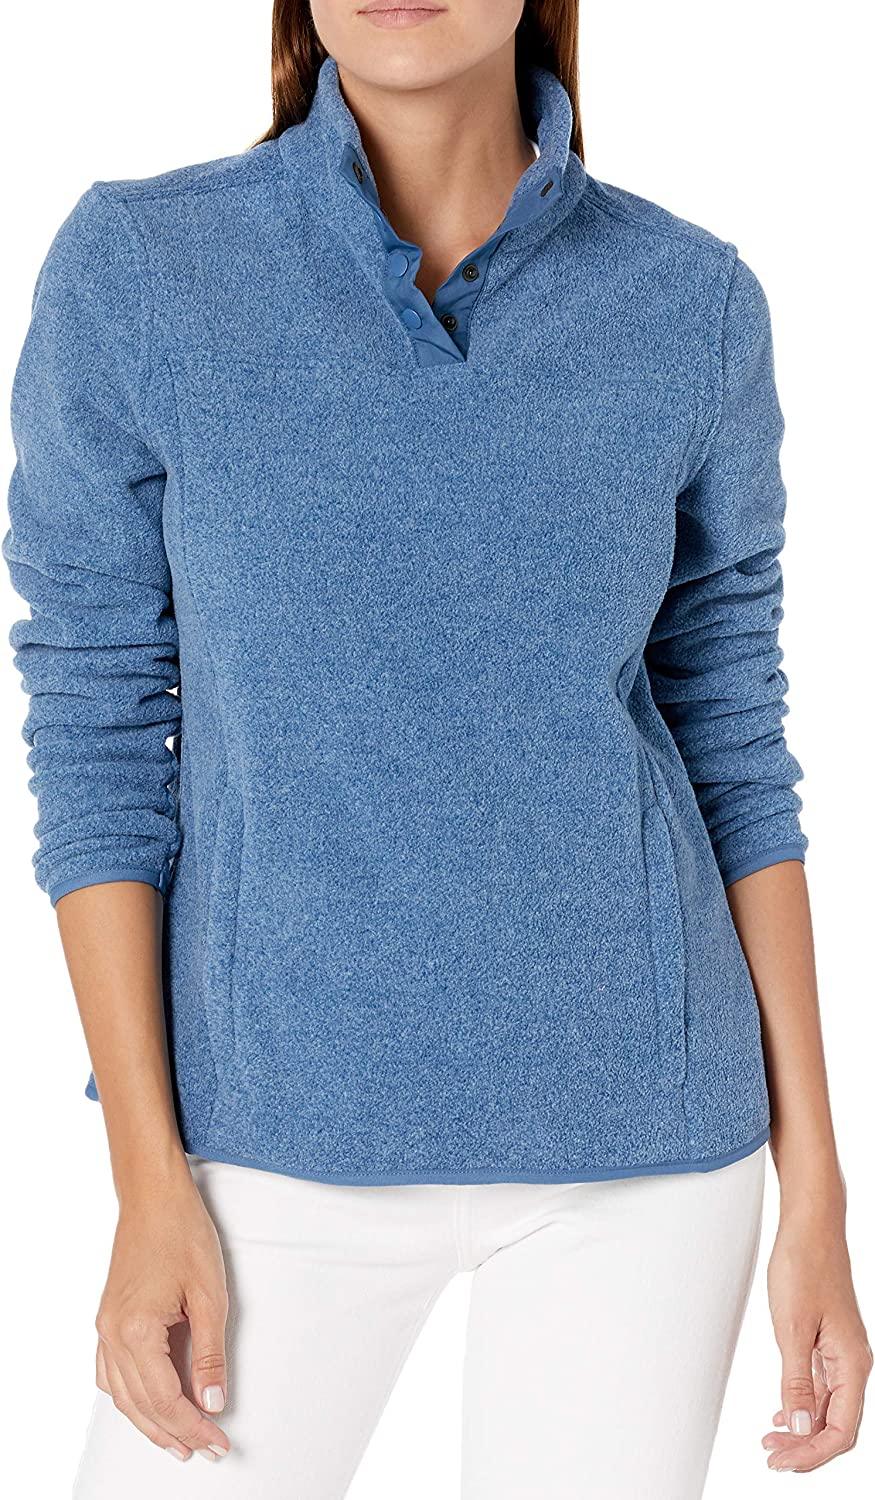 Amazon Essentials Women's Polar Fleece Long Sleeve Mock Neck Relaxed-Fit Popover Jacket with Pockets